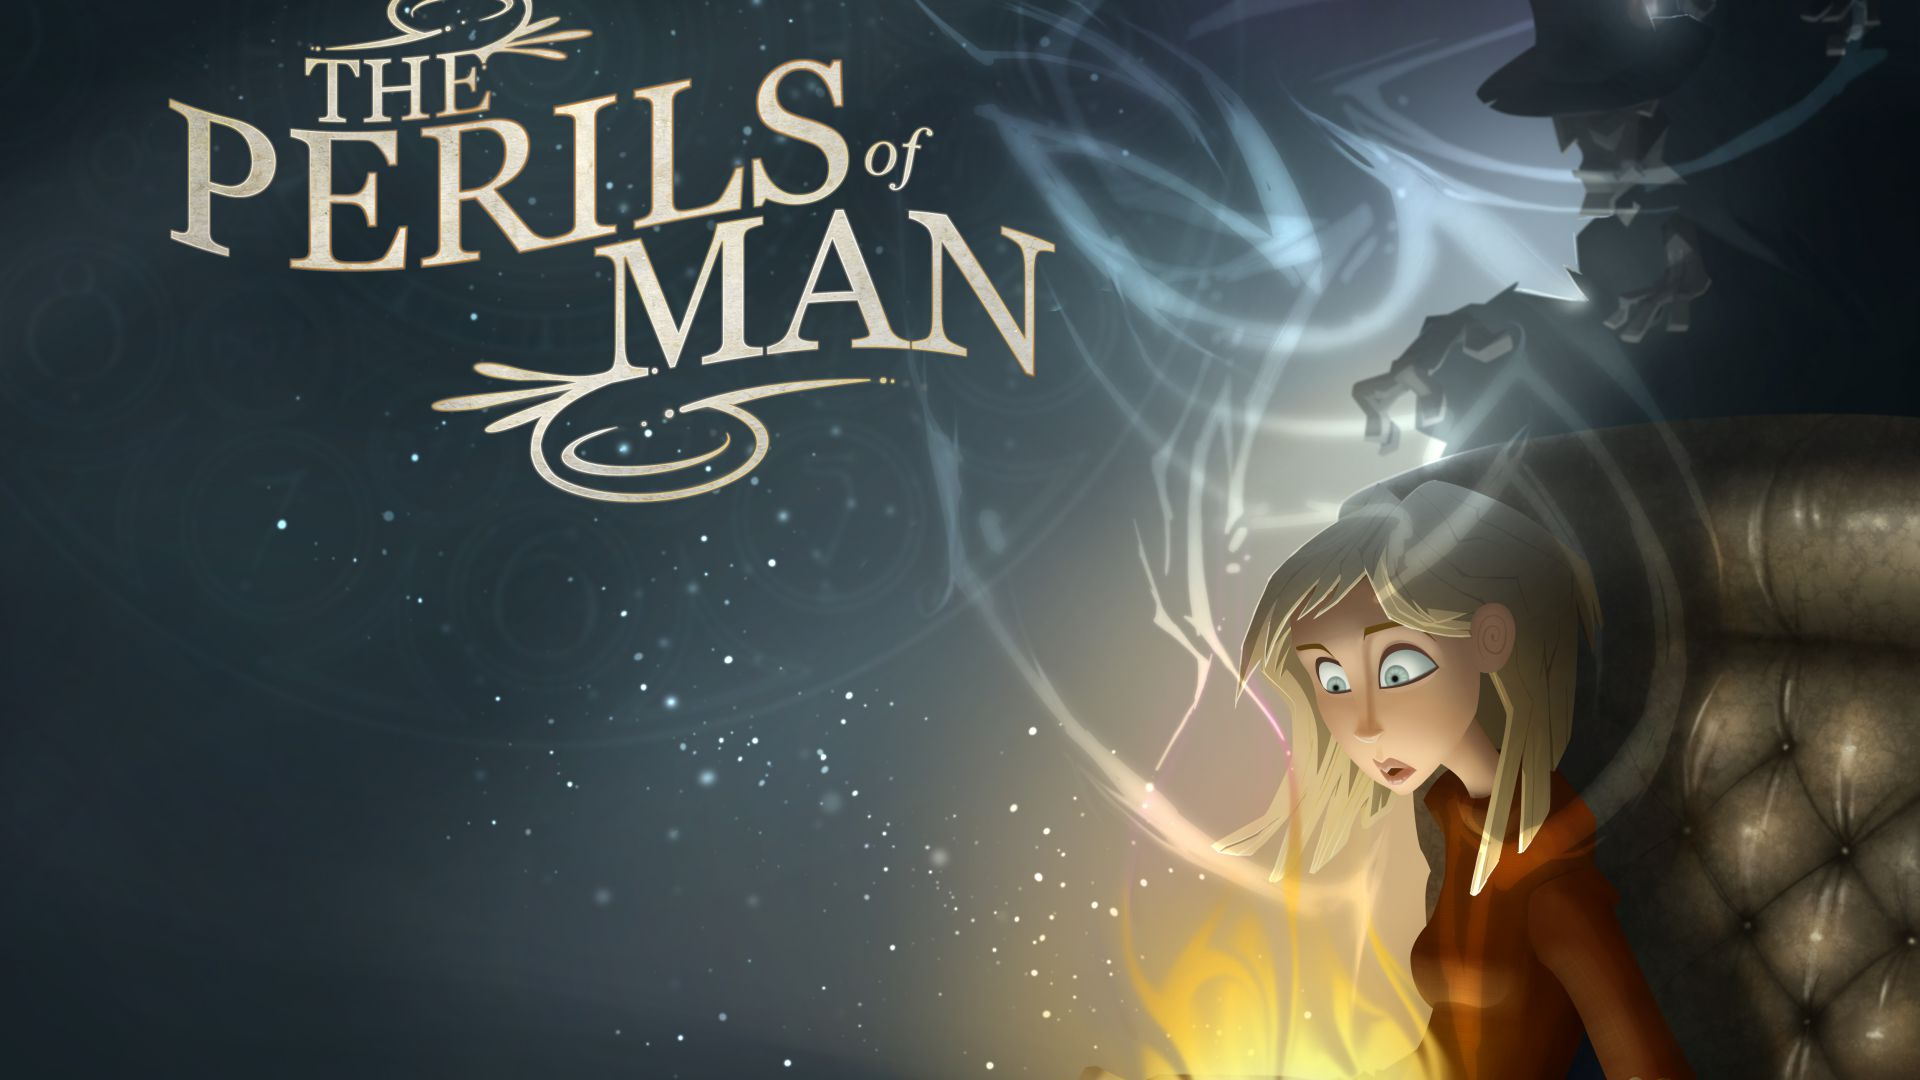 Perils of Man, Best Games 2015, game, indie, quest, fantasy, steam punk, PC, Apple (horizontal)